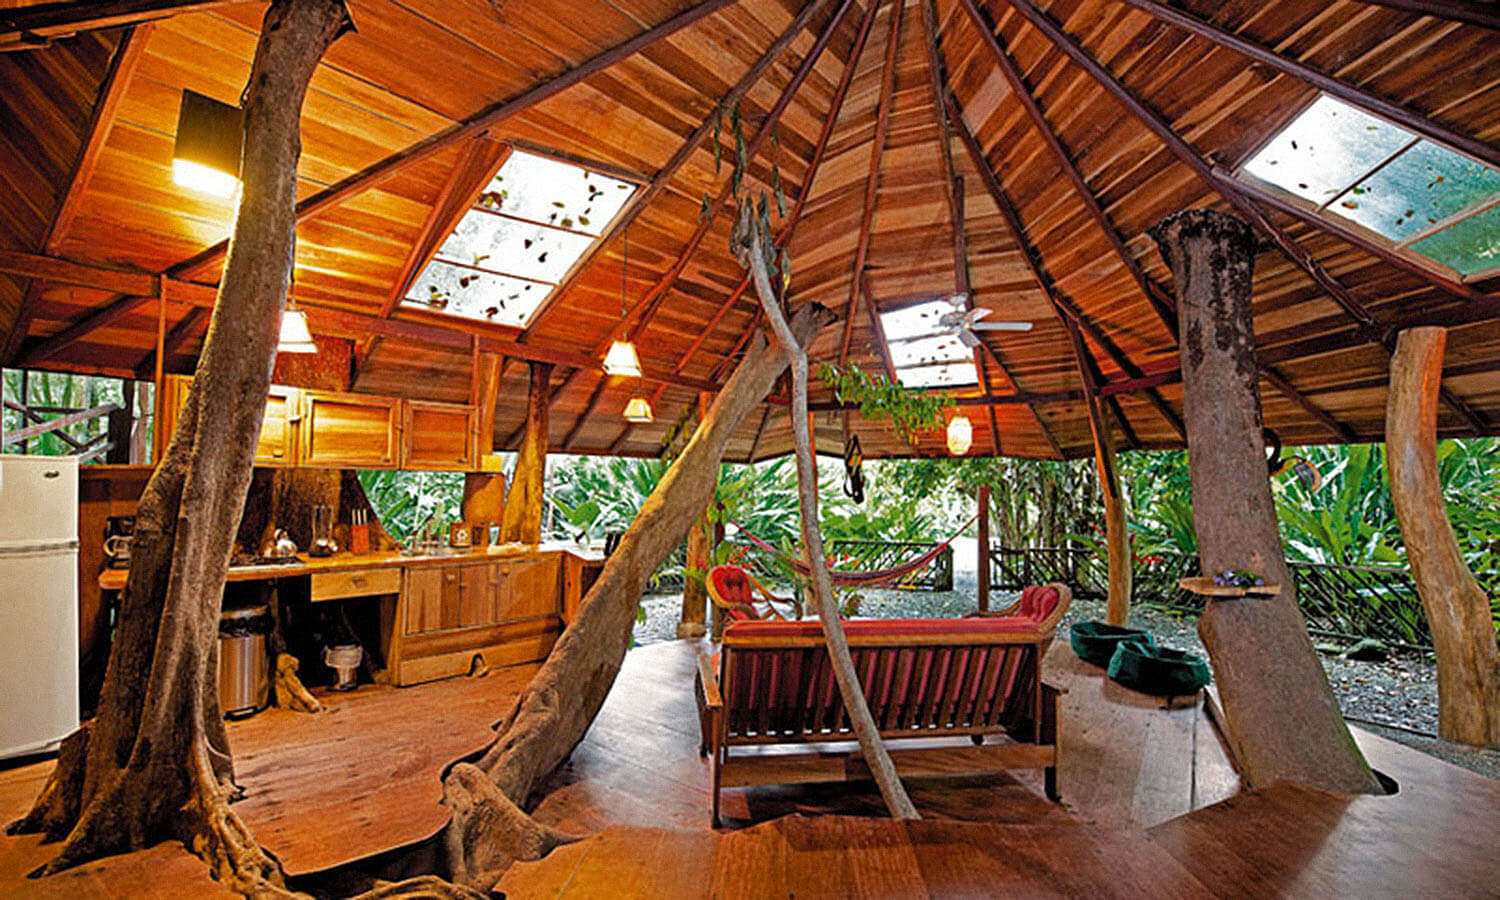 Well lit interiors of Treehouse Lodge in Punta Uva in Costa Rica